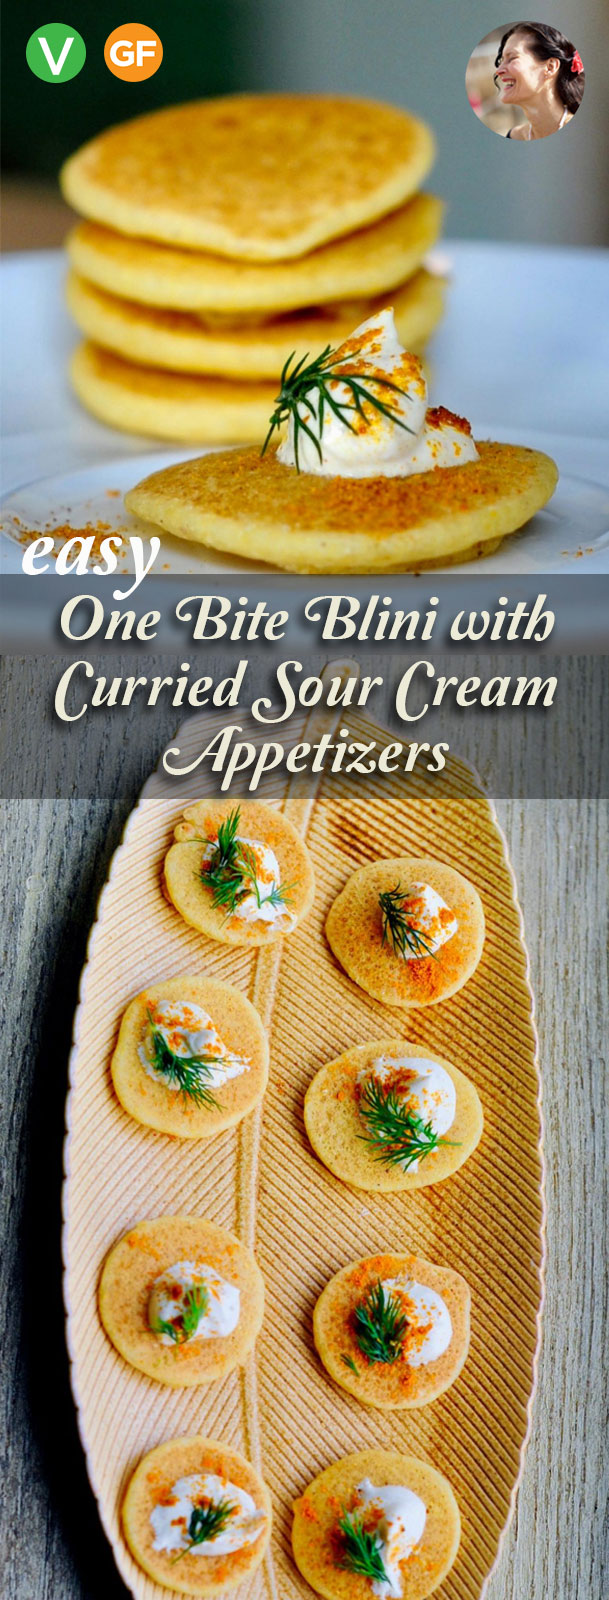 Easy One Bite Blini with Curried Sour Cream Appetizers, Vegan, Gluten Free. Simple. Elegant. Sophisticated. Delicious. Make ahead.